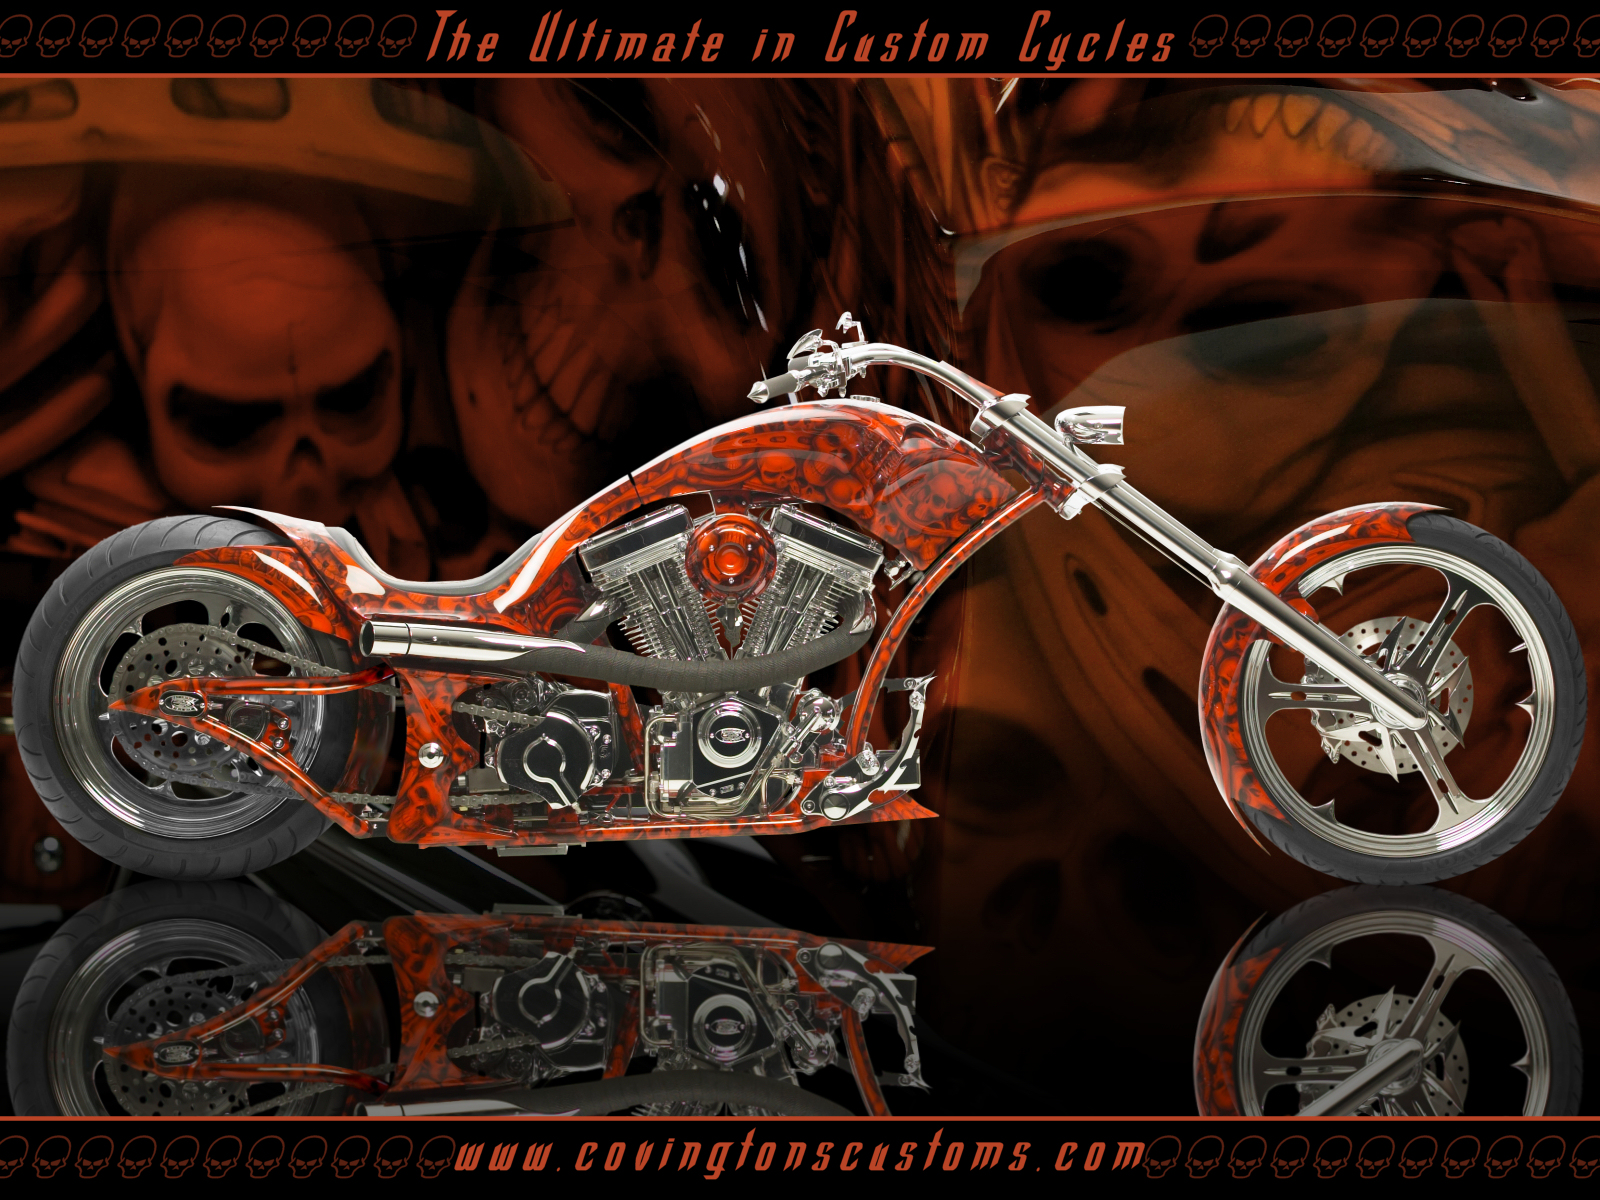 Bikes For Sale Custom Motorcycles Cars Links Events Contact